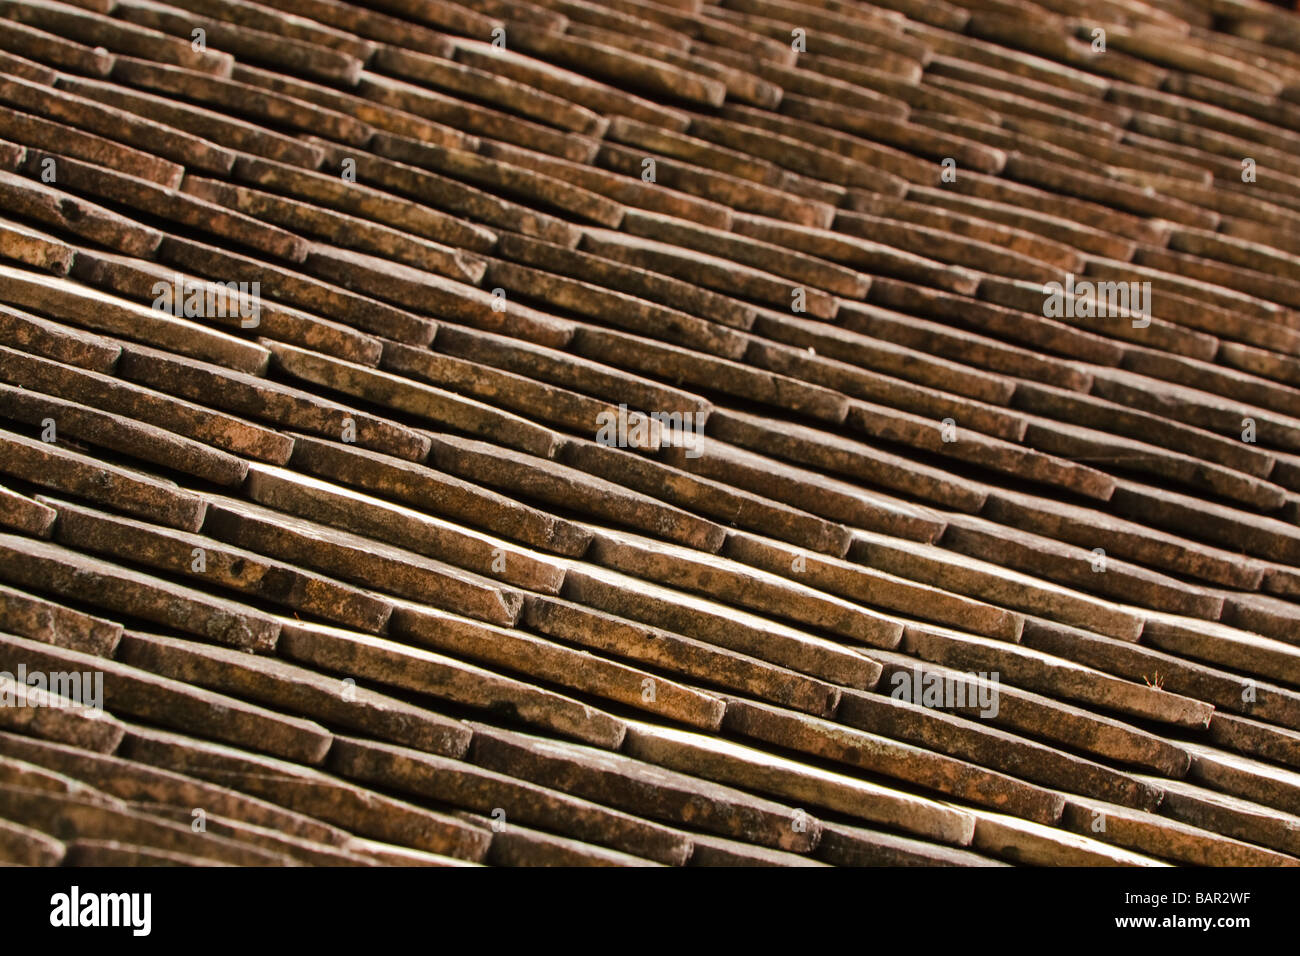 roof tile pattern - Stock Image